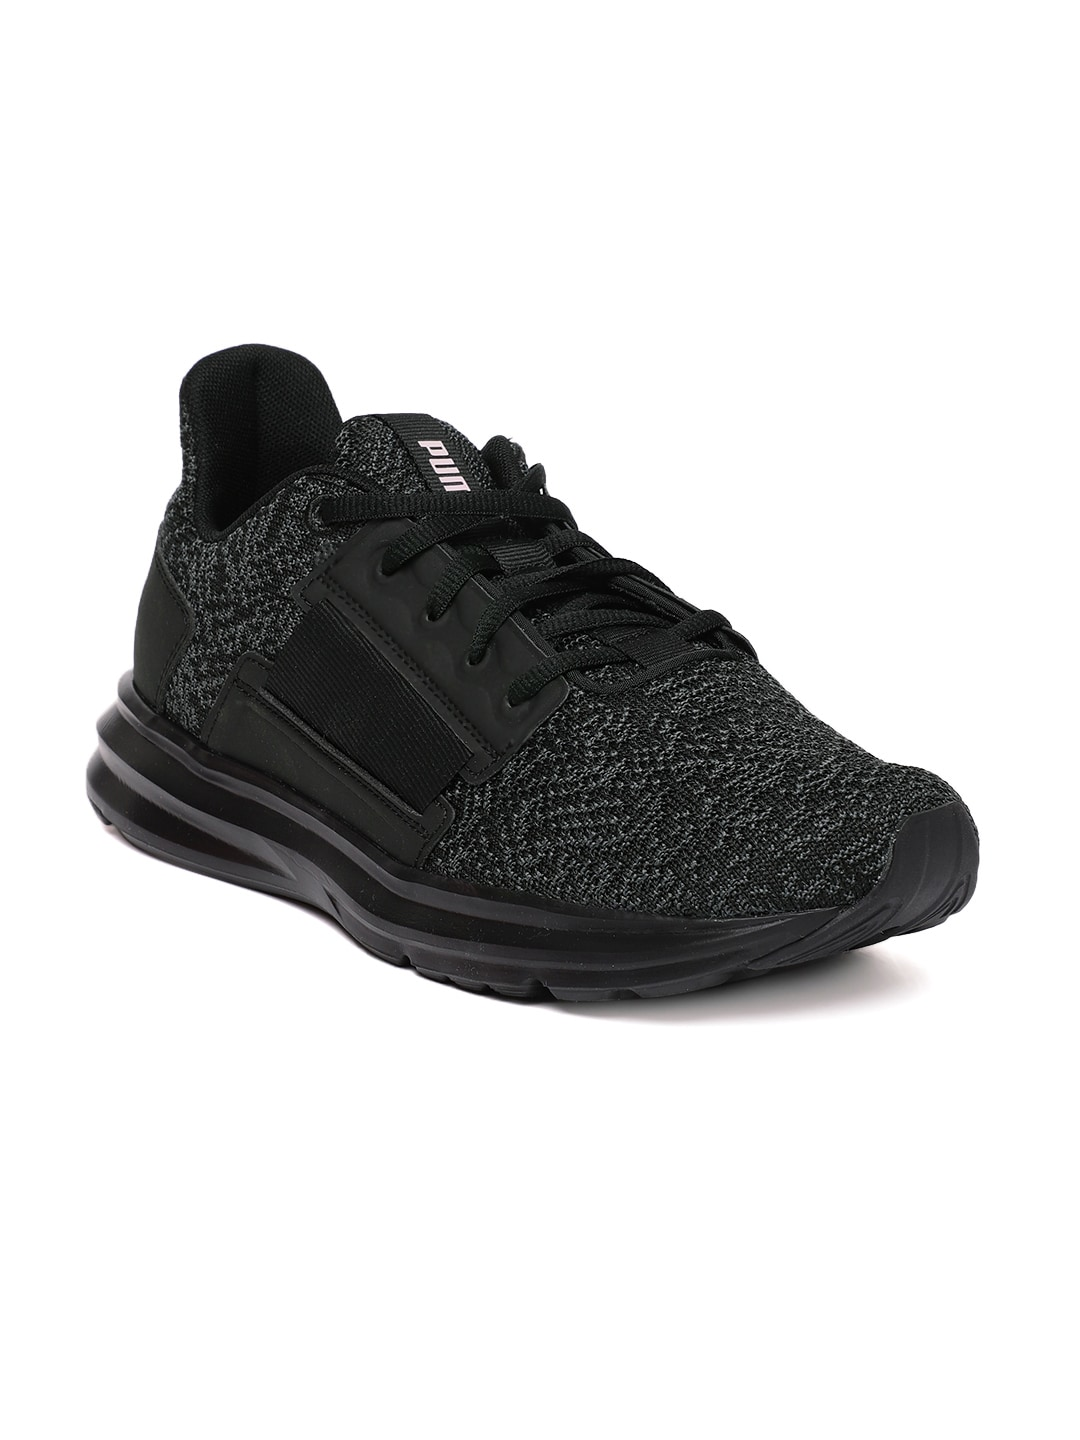 6f33f459eeb High Sports Shoes - Buy High Sports Shoes online in India